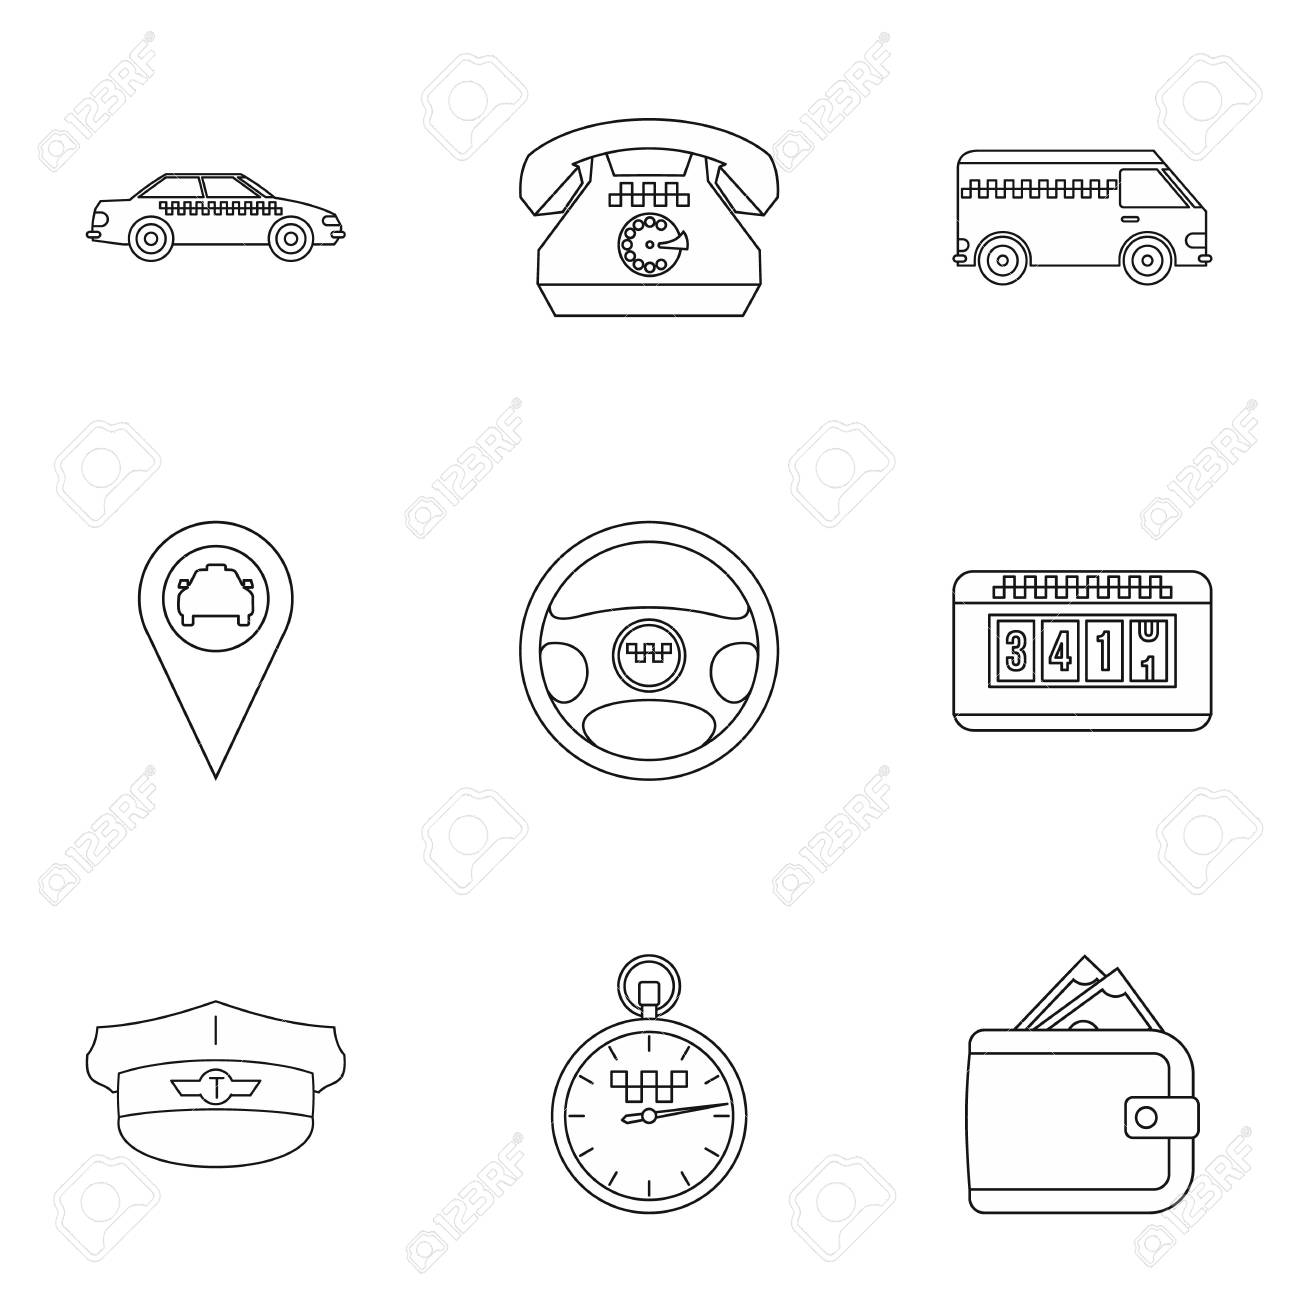 Taxi Custom Icons Set Outline Illustration Of 9 Vector For Web Stock